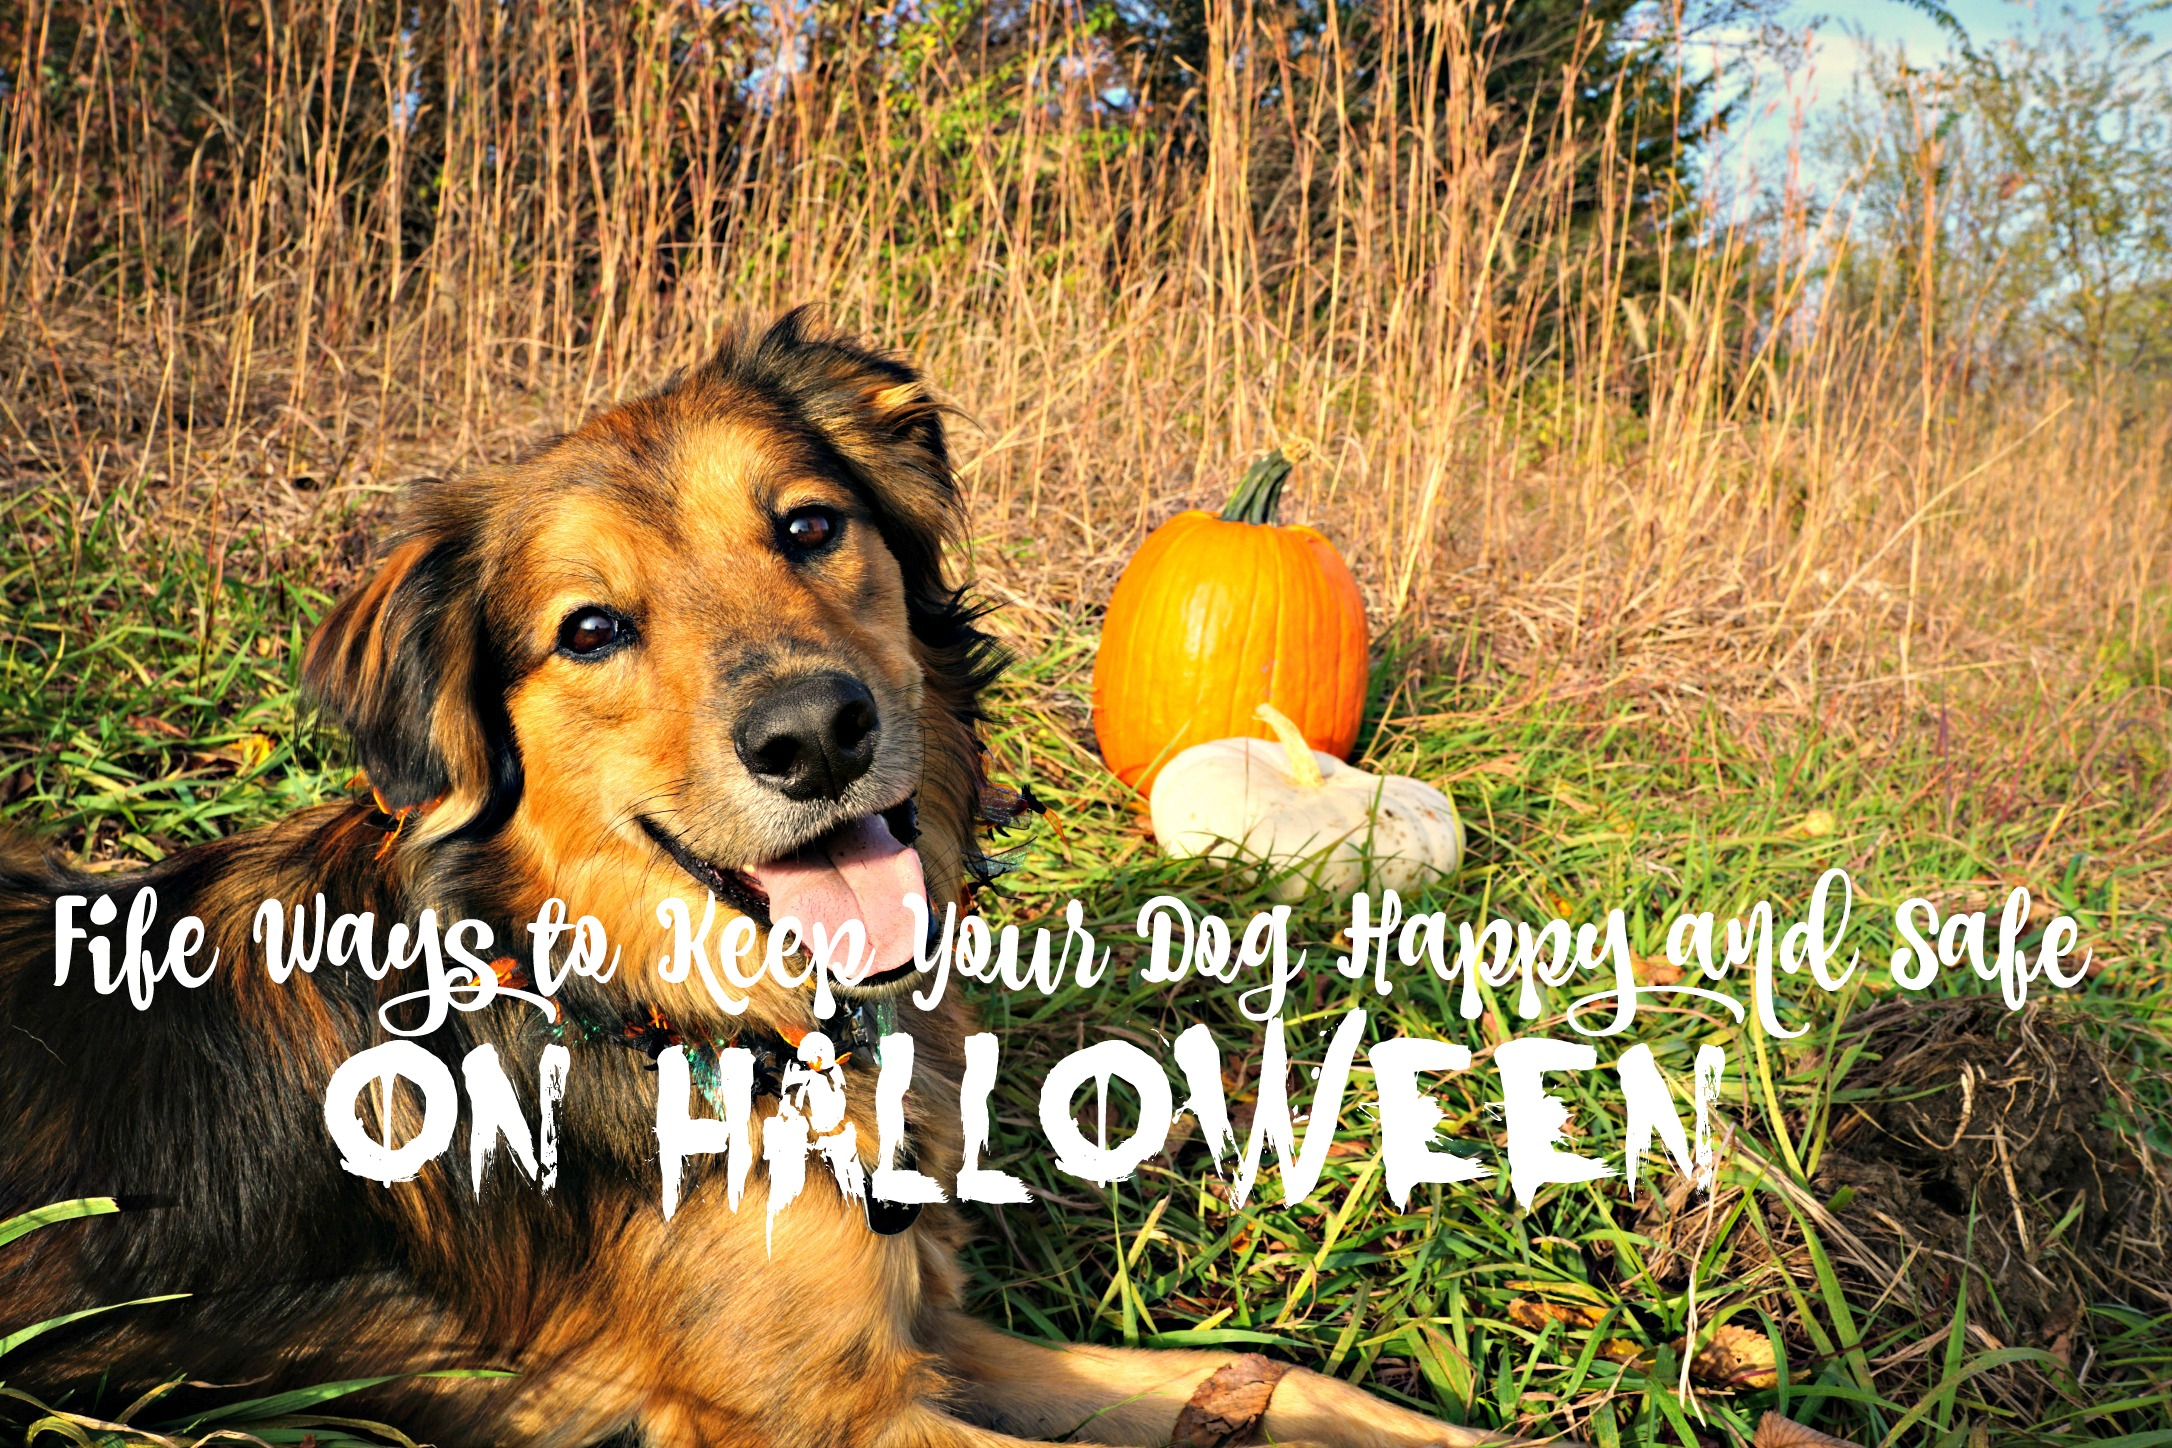 Tricks for Treats: 5 Ways to Make Sure Halloween is Fun and Safe for your Dogs